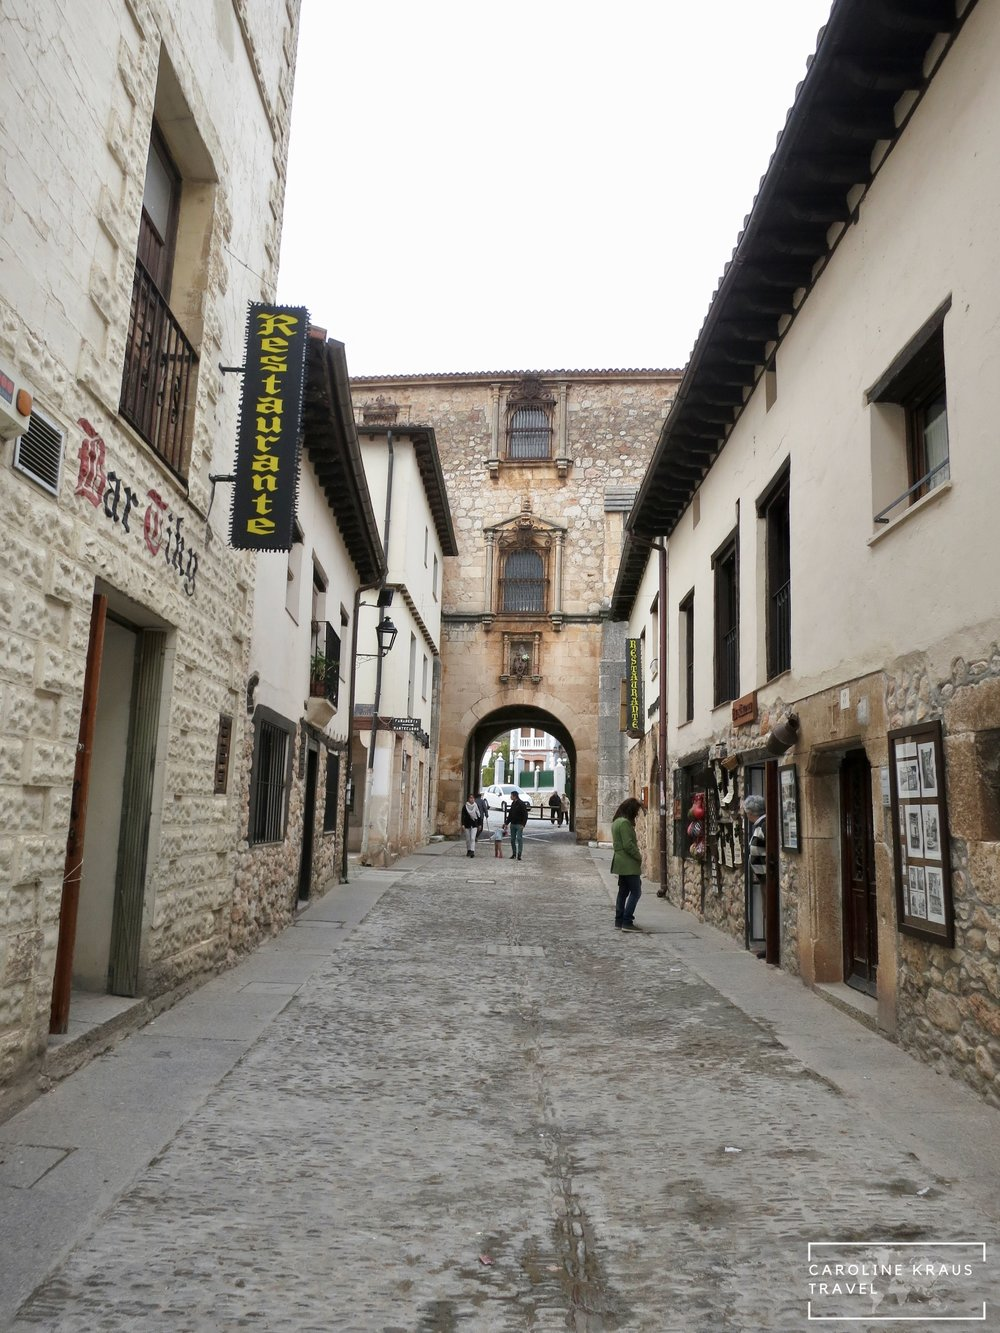 The streets and walls of Covarrubias, Spain